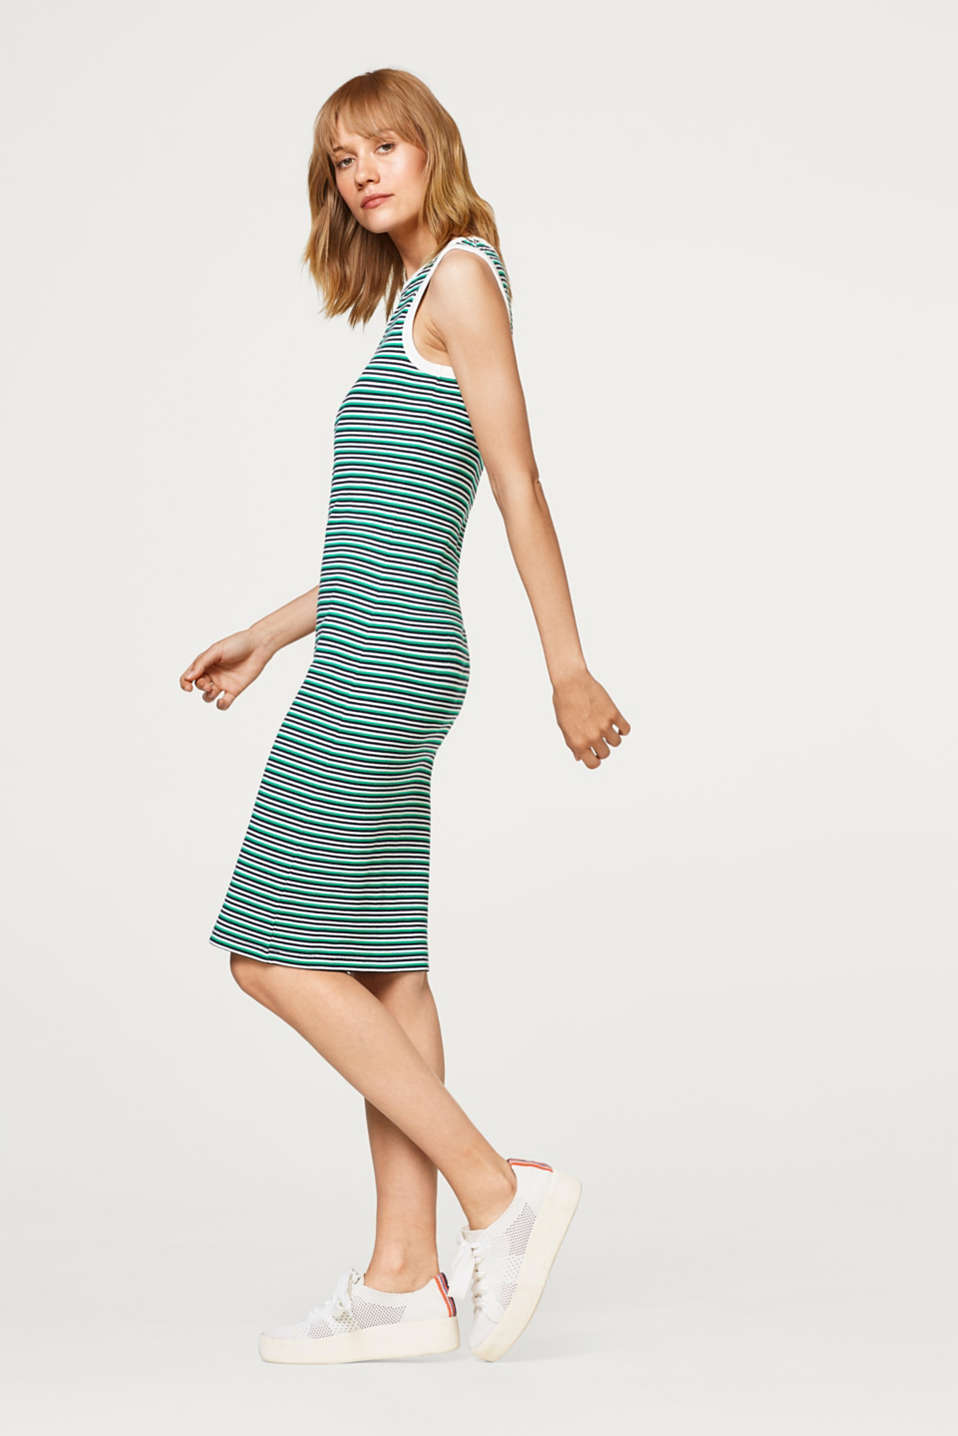 Striped dress made of ribbed jersey